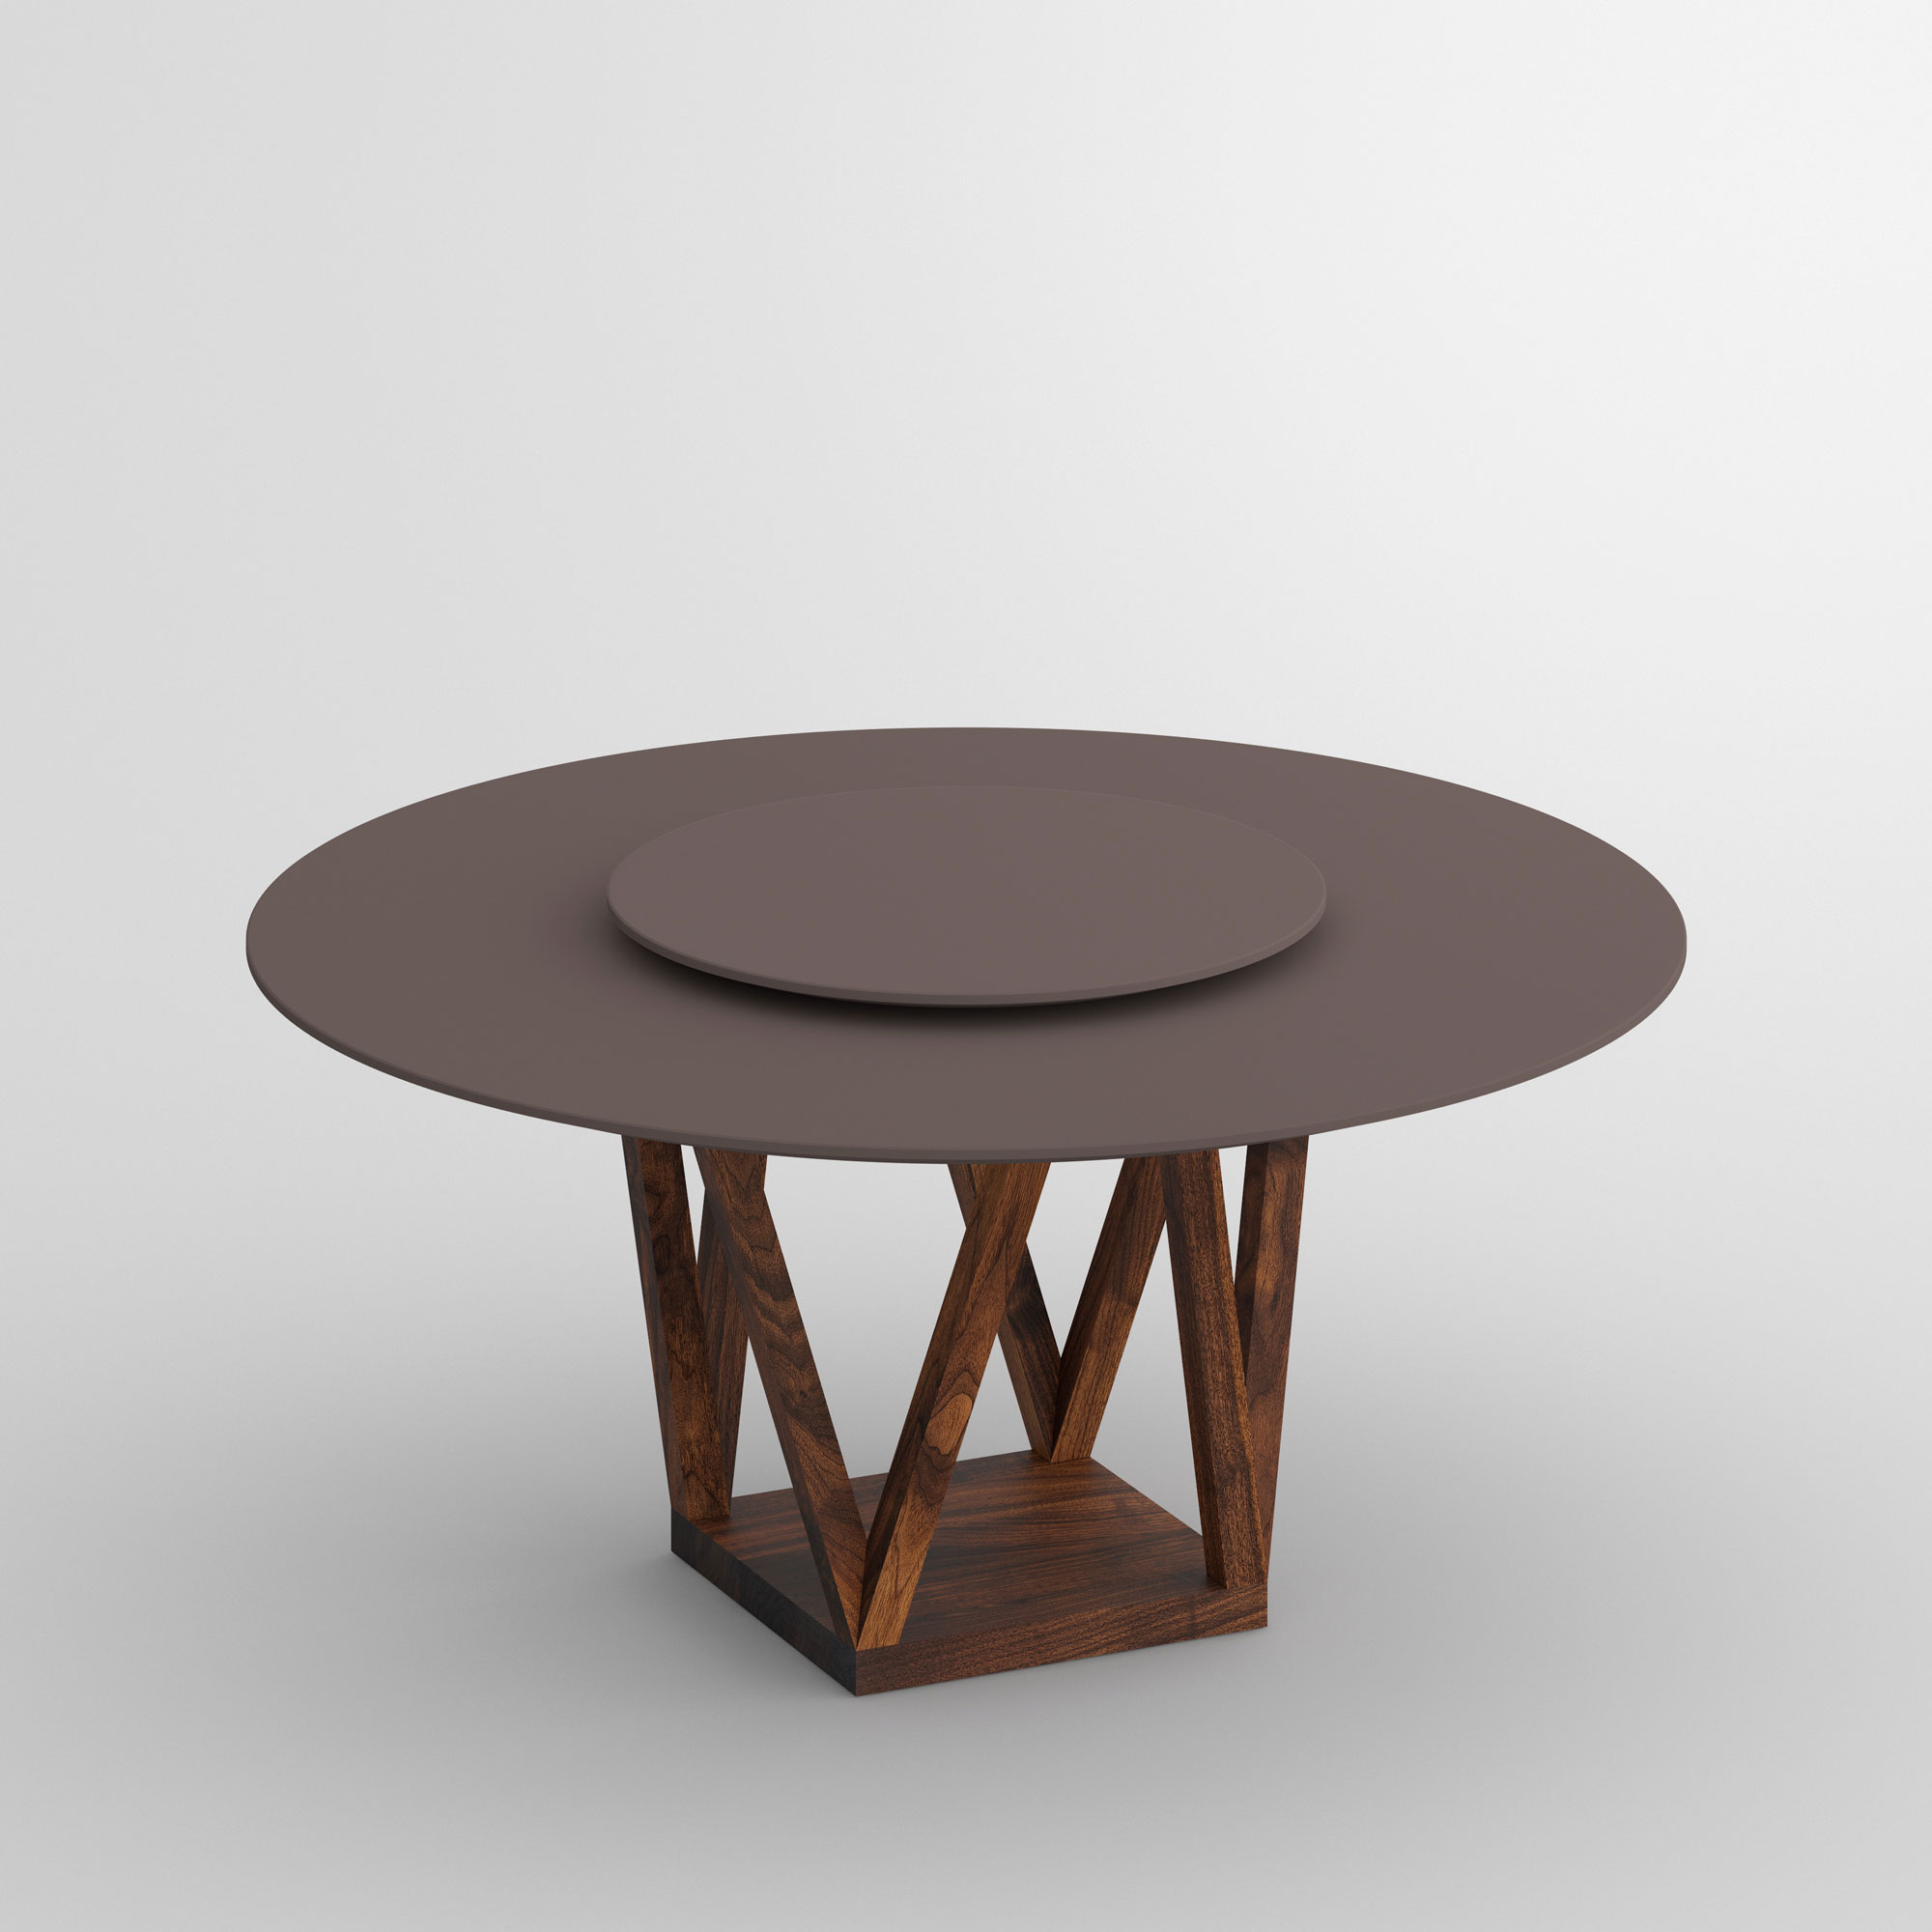 Designer Rotating Tray Accessory LAZY-SUZY LINOLEUM camQ custom made in solid wood by vitamin design